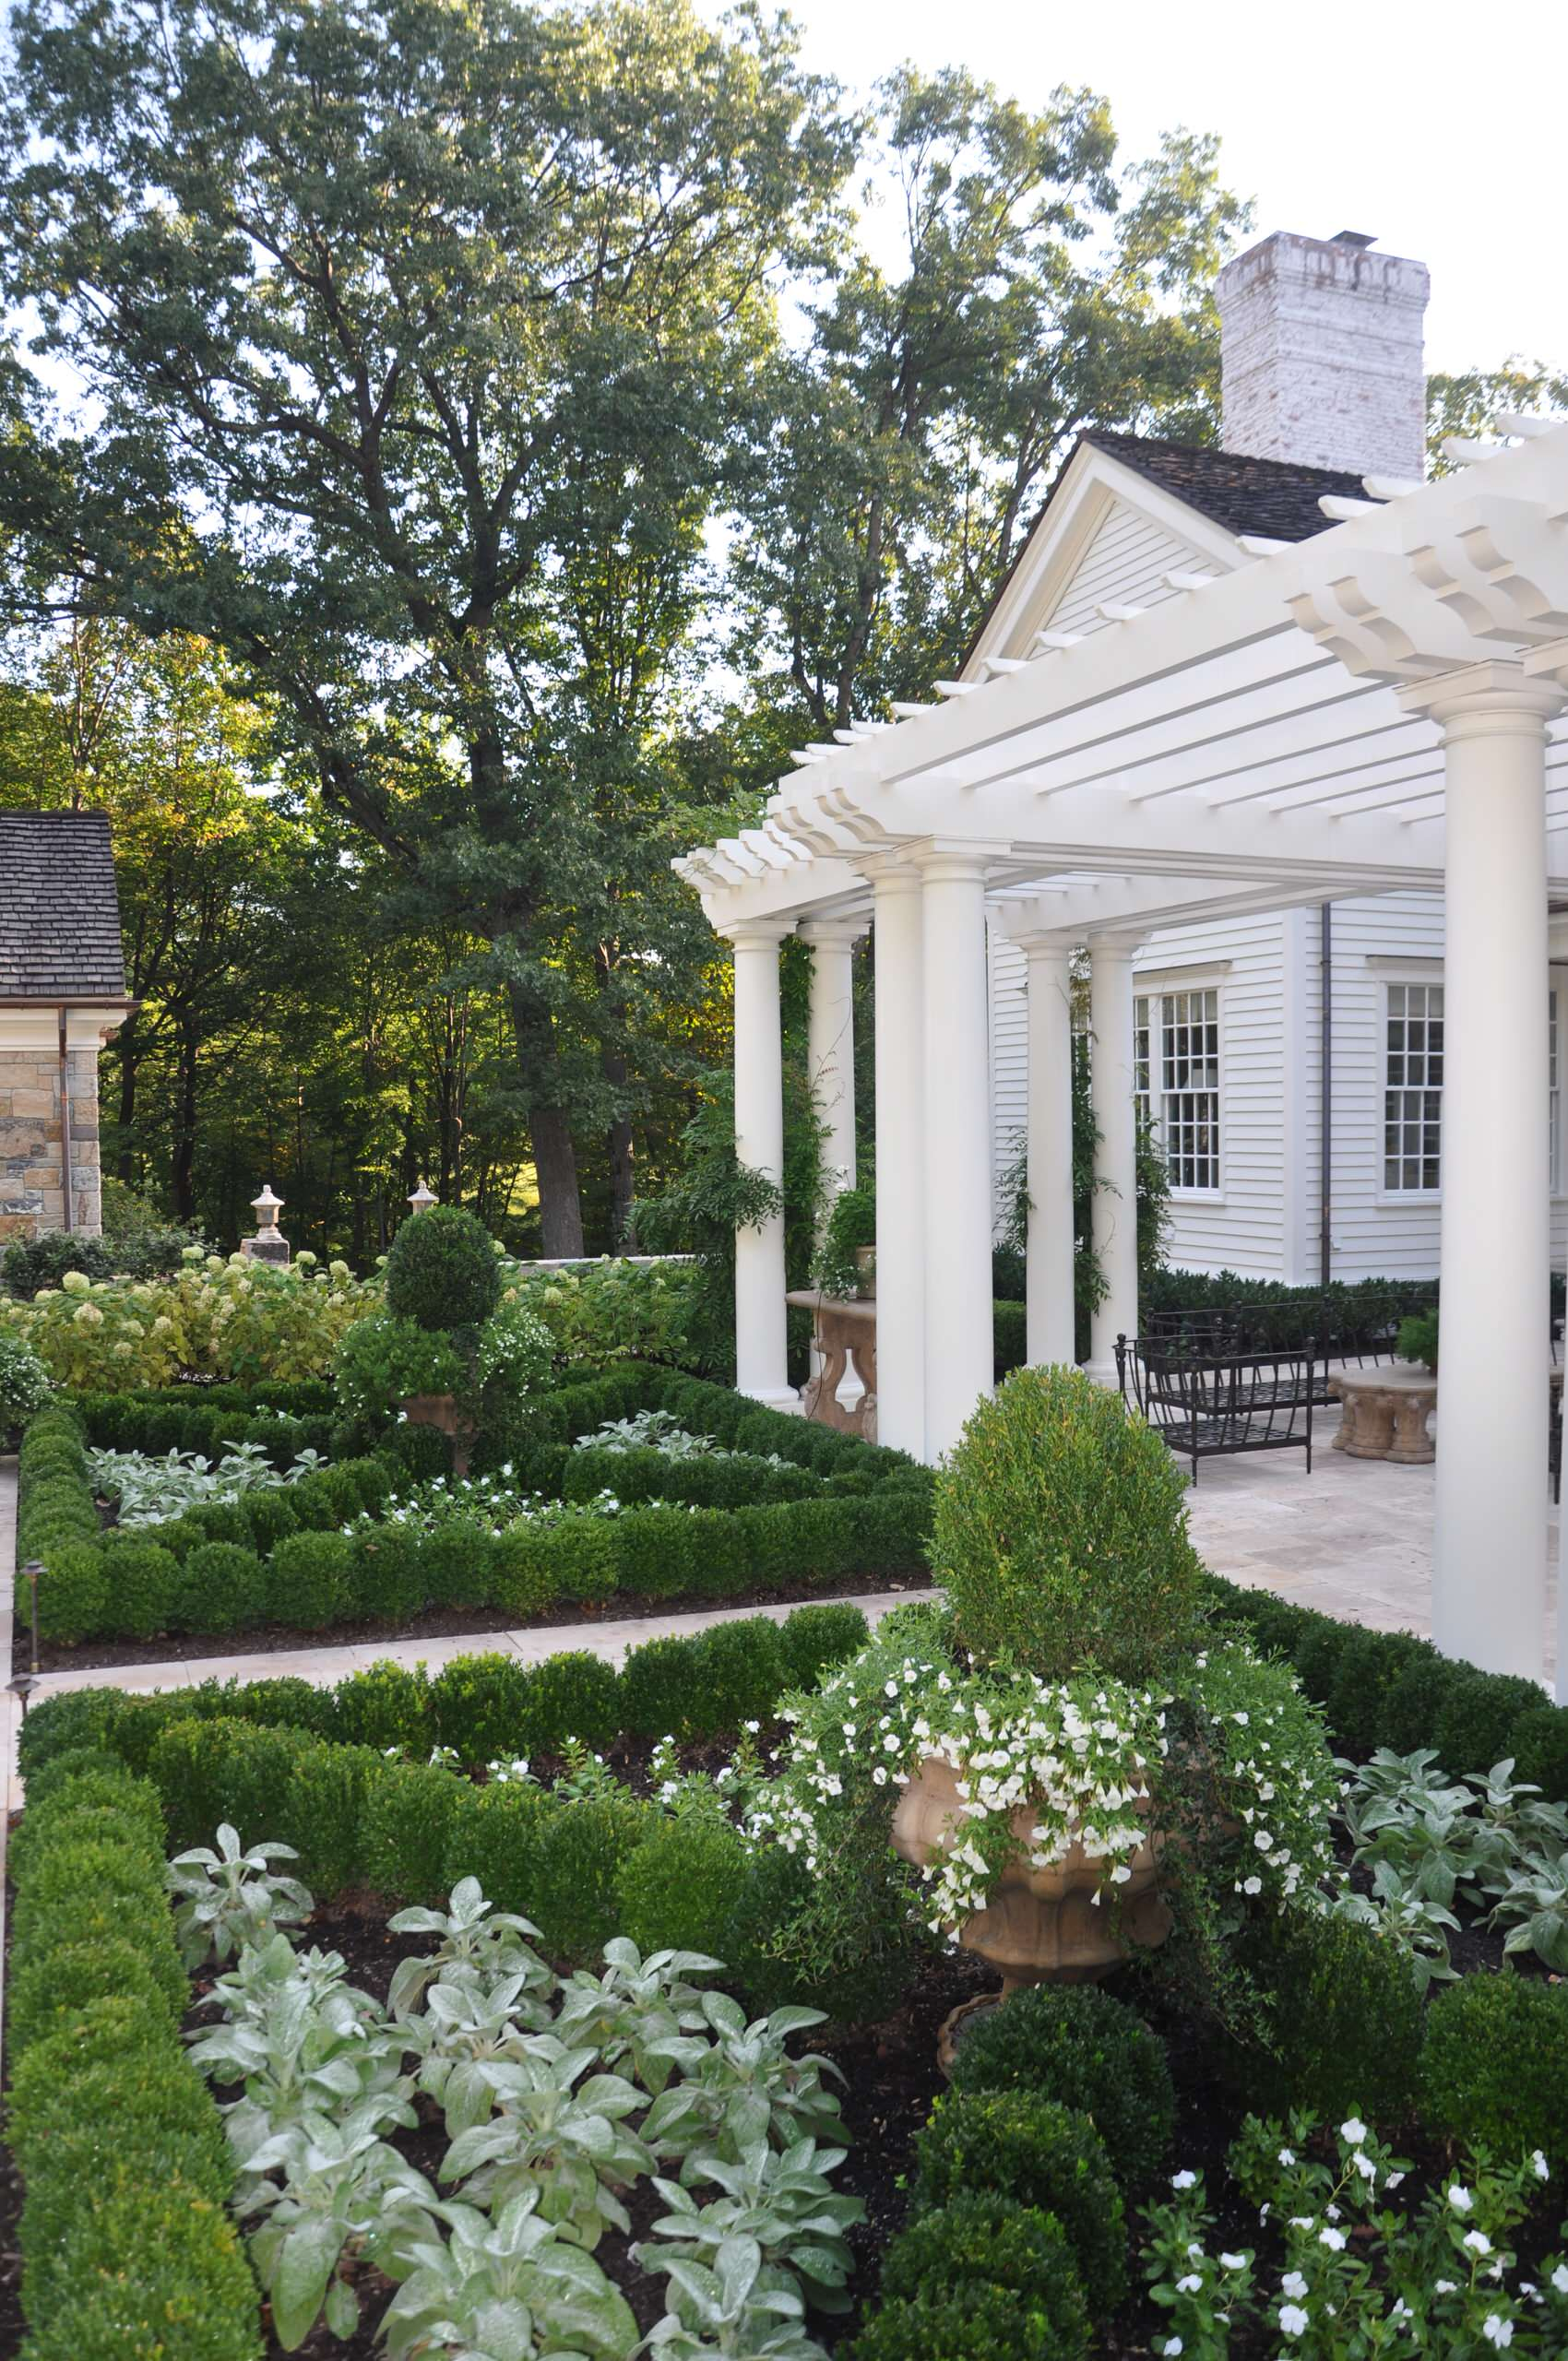 75 Beautiful French Country Landscaping Pictures Ideas March 2021 Houzz